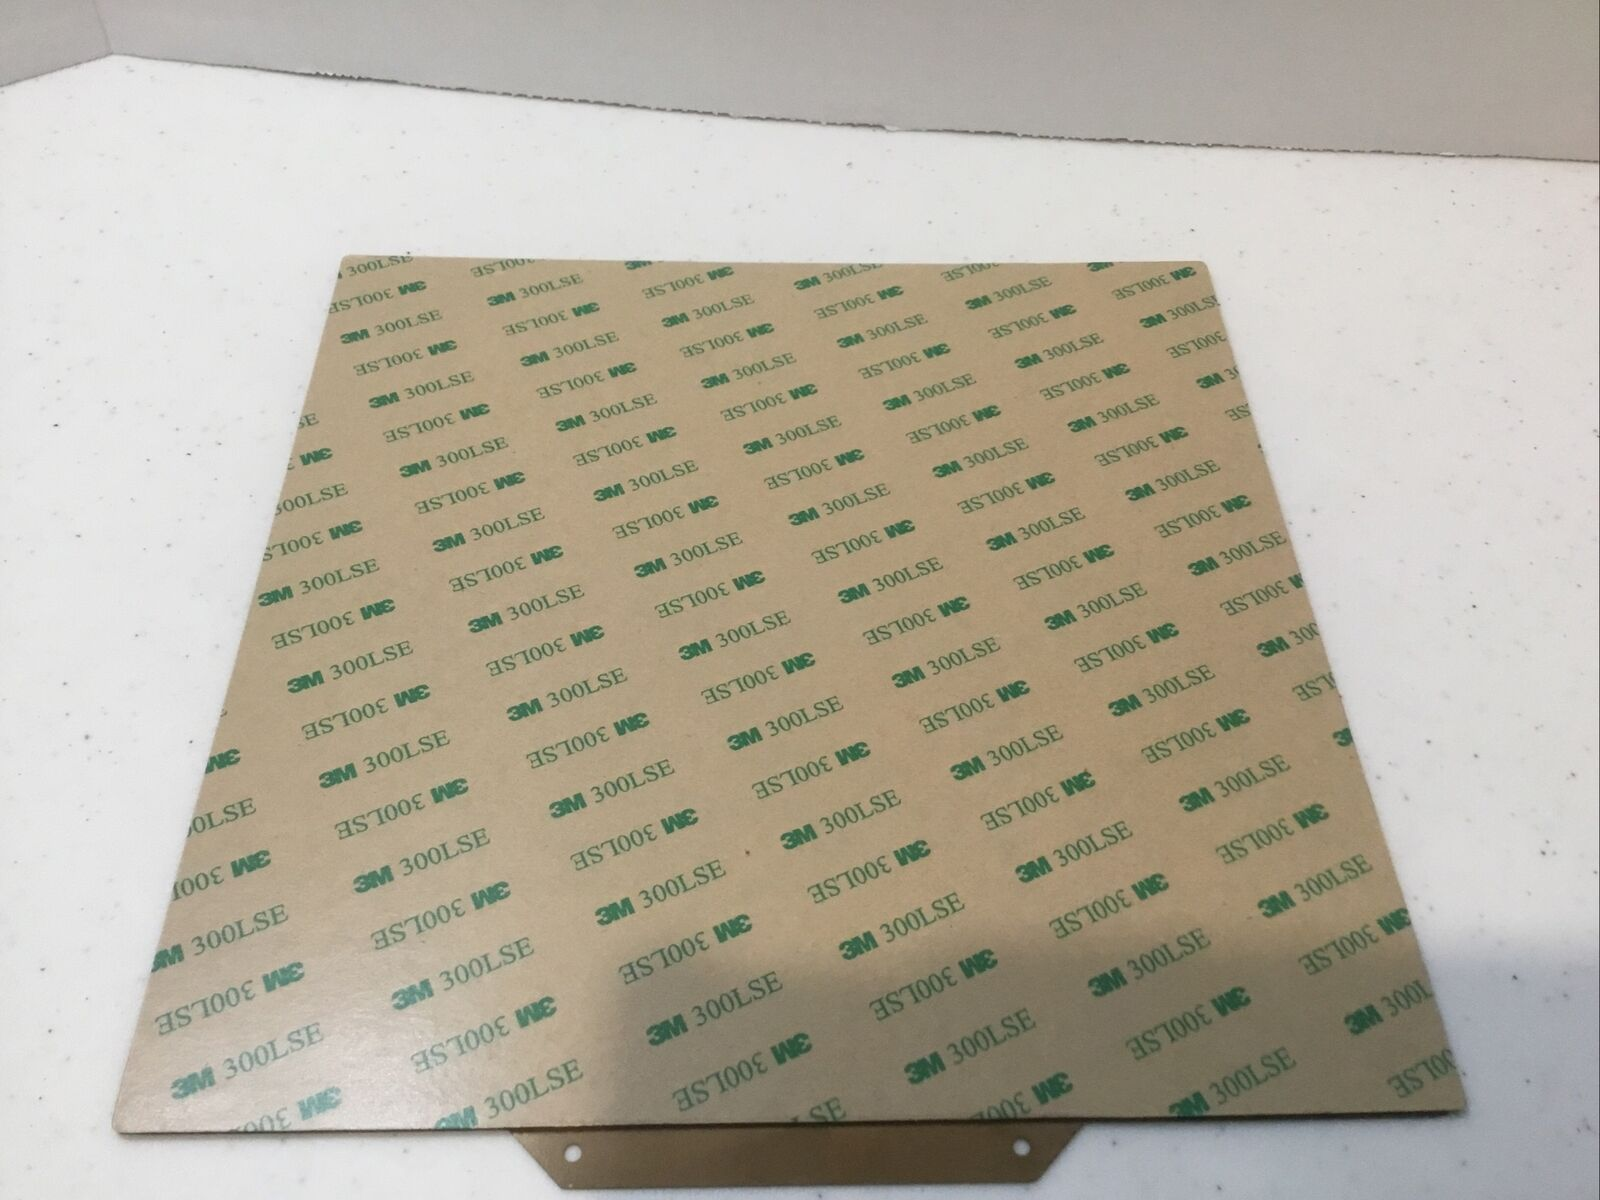 Comgrow 3D Printer Flexible Magnetic Bed Build Surface Adhesive Plate PEI Sheet